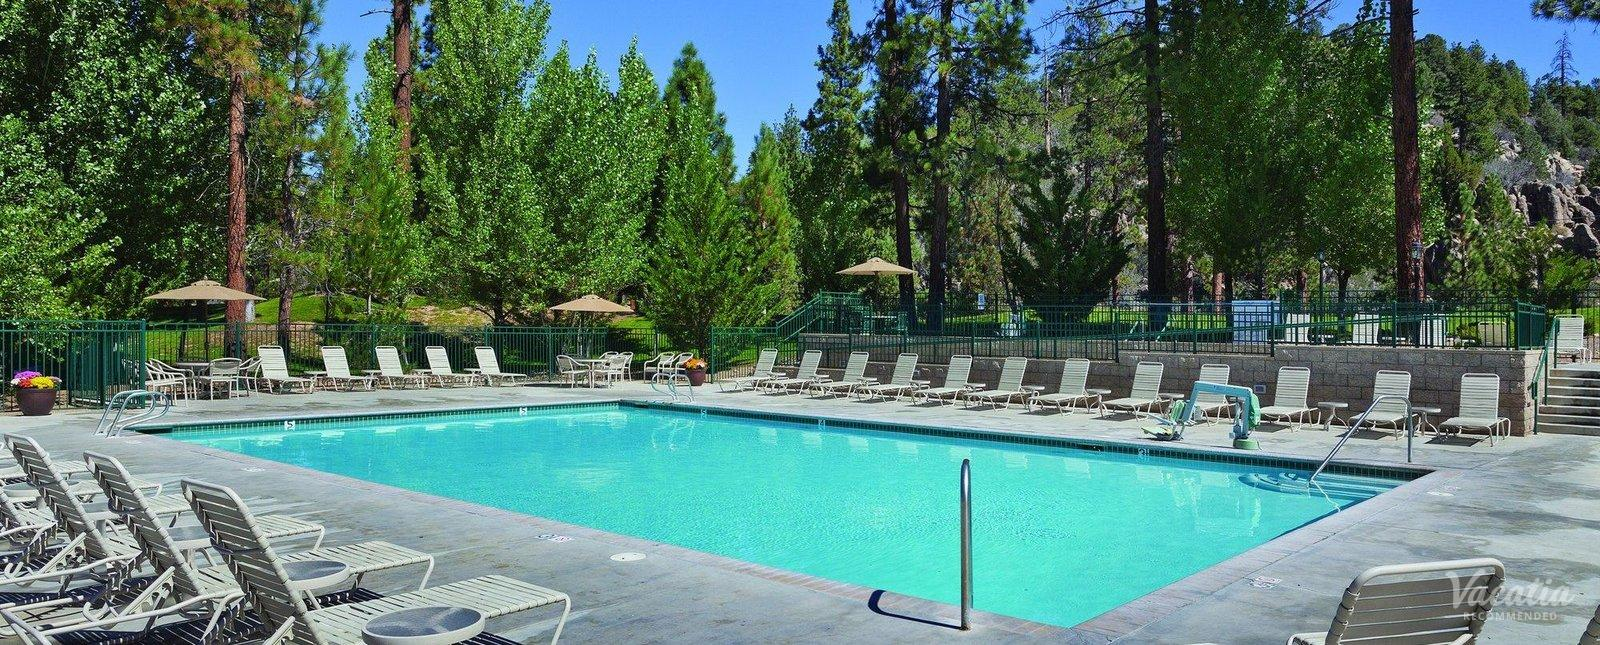 WorldMark Big Bear Resort Pool